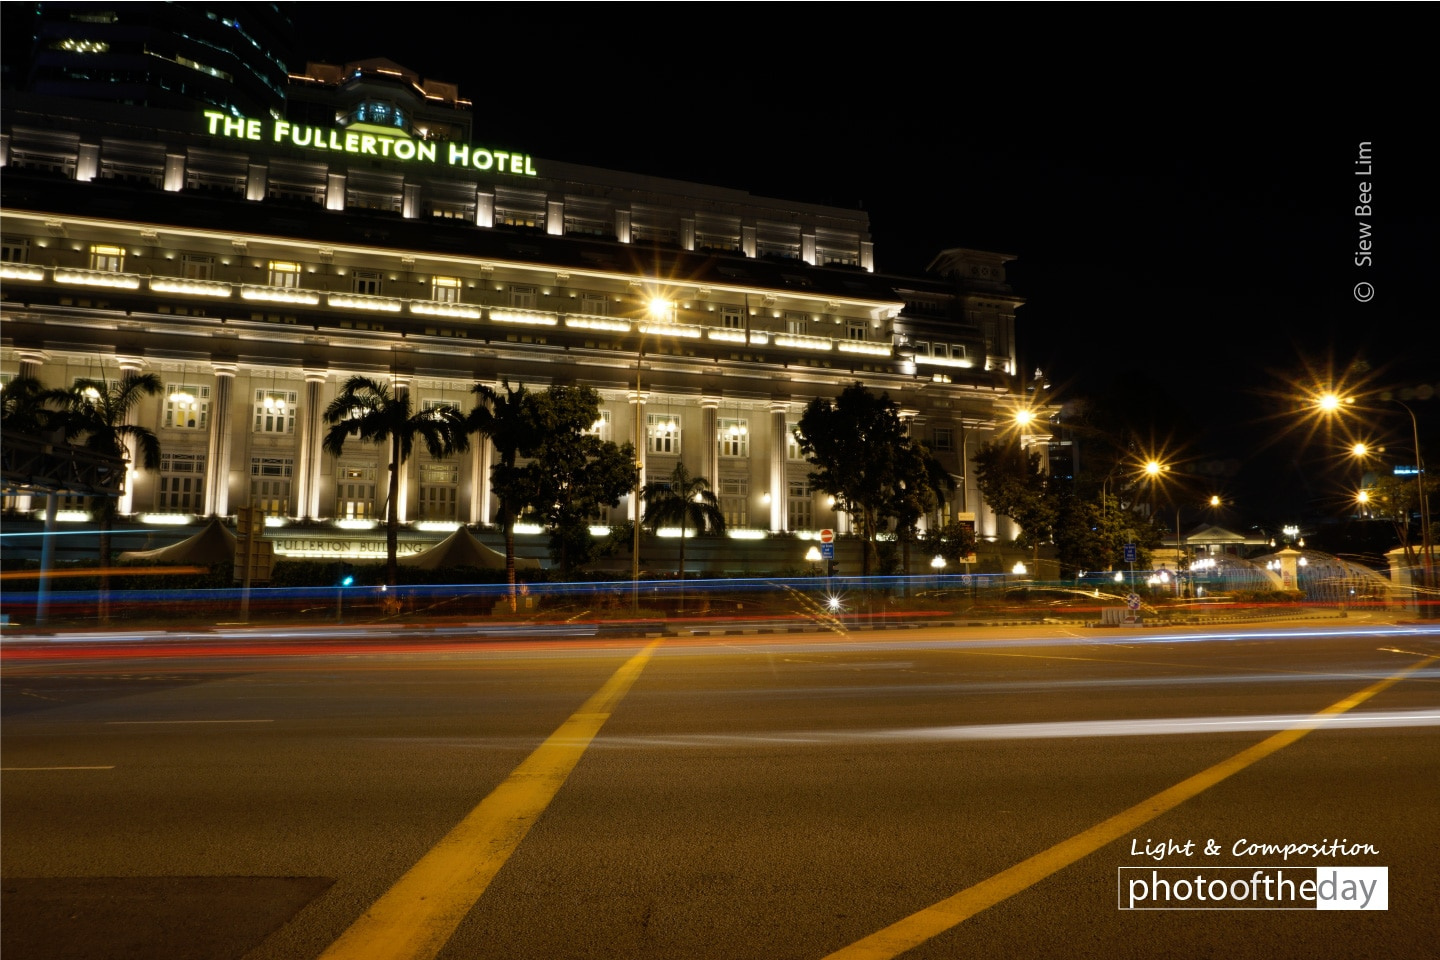 A Front View of Fullerton Building by Siew Bee Lim